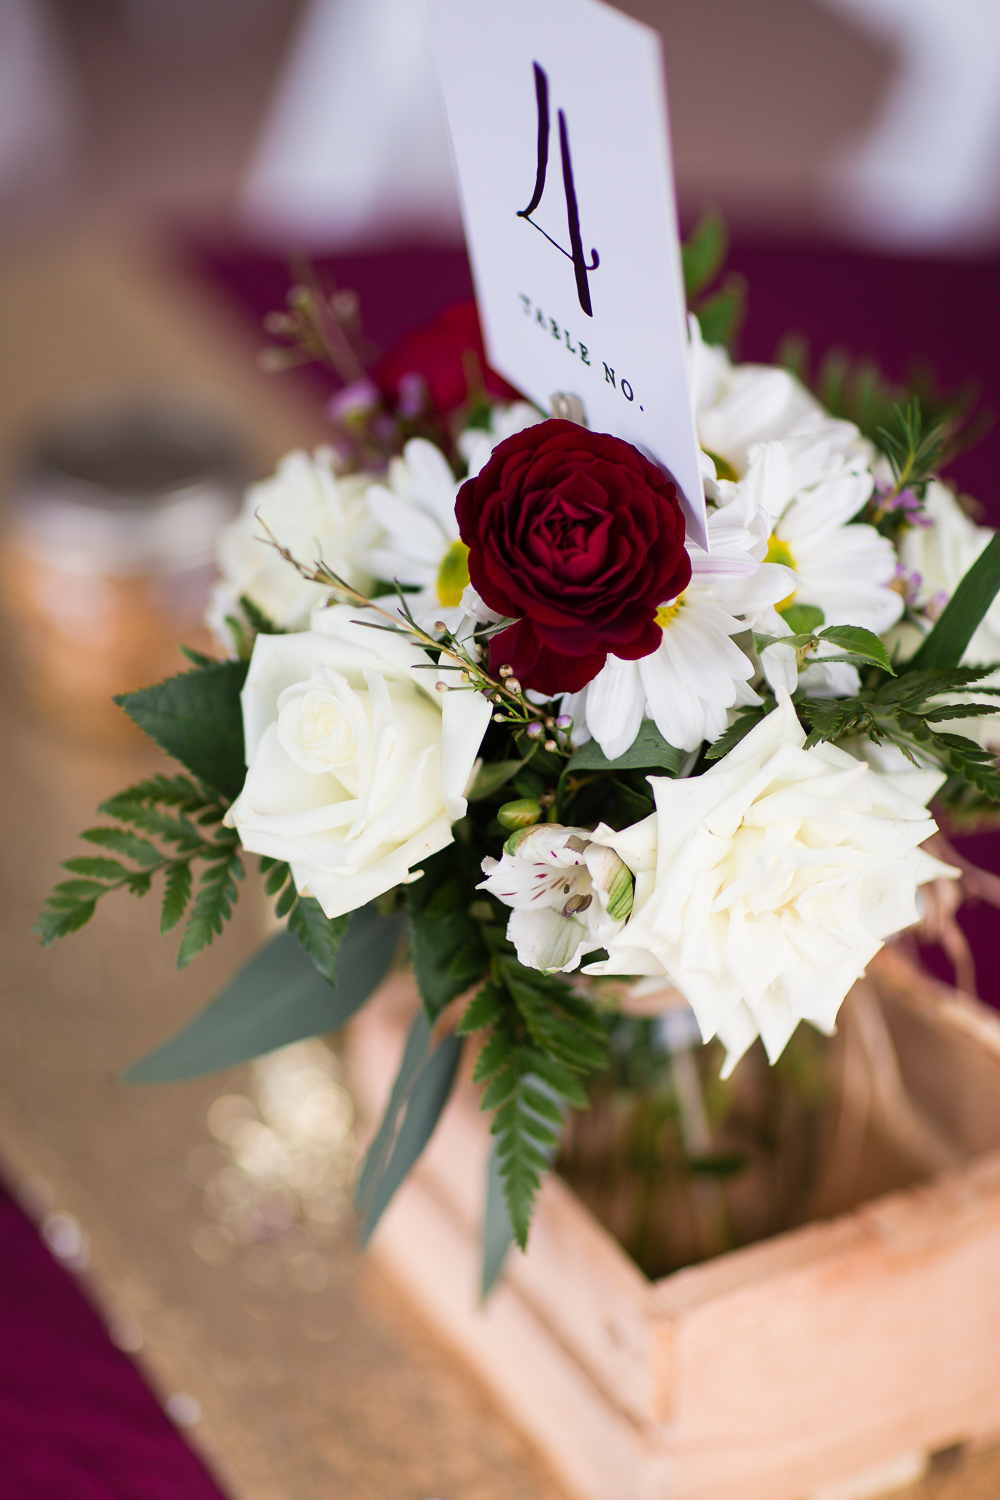 wild-rose-weddings-arlington-chris-harth-photography-345.jpg